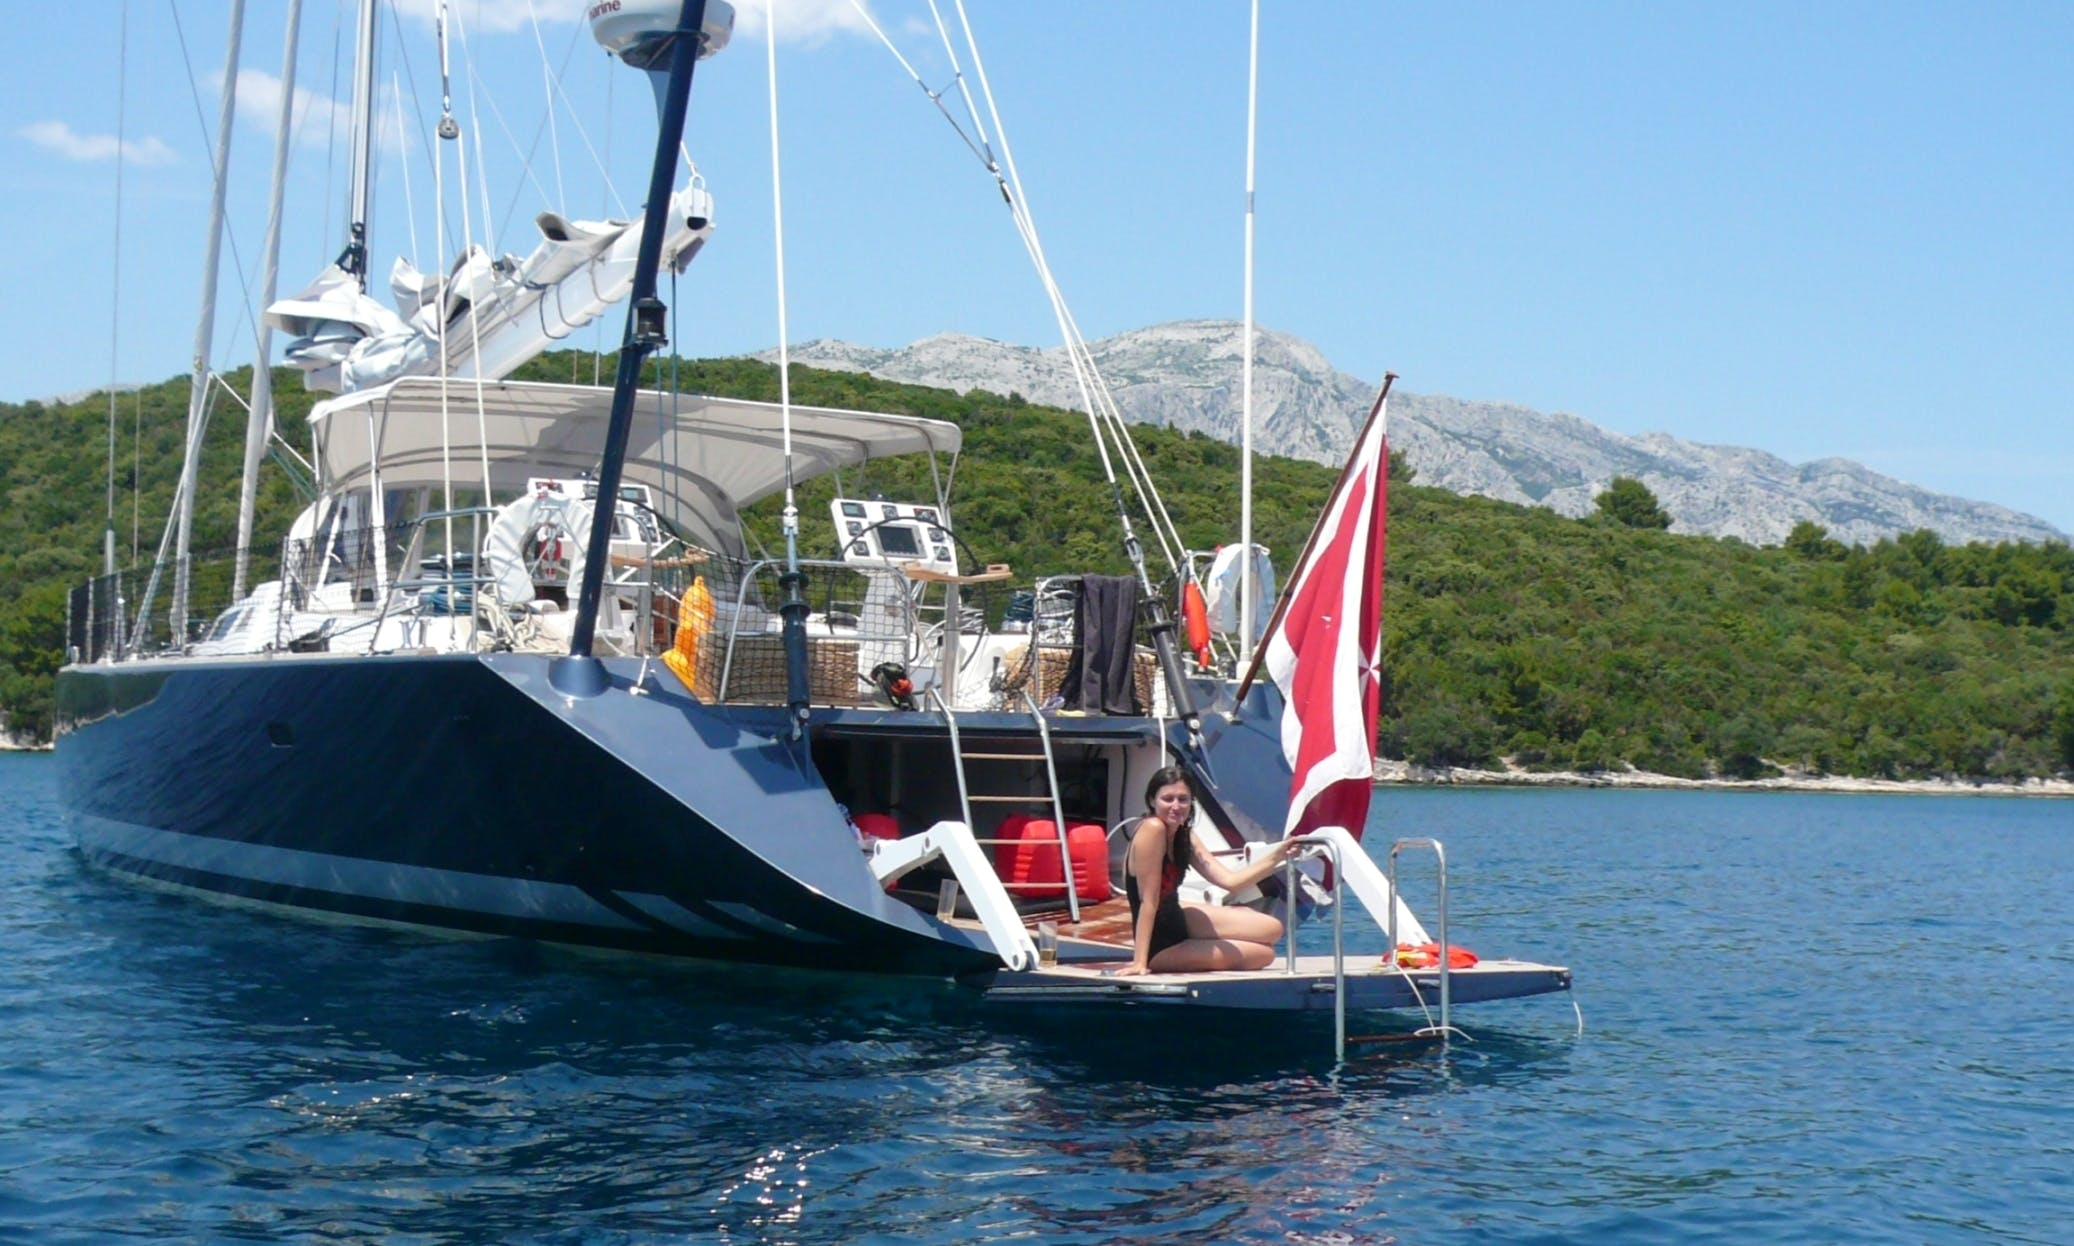 Trehard Vaton 83 Luxury Sailing Sloop in Eivissa, Balearics and west med